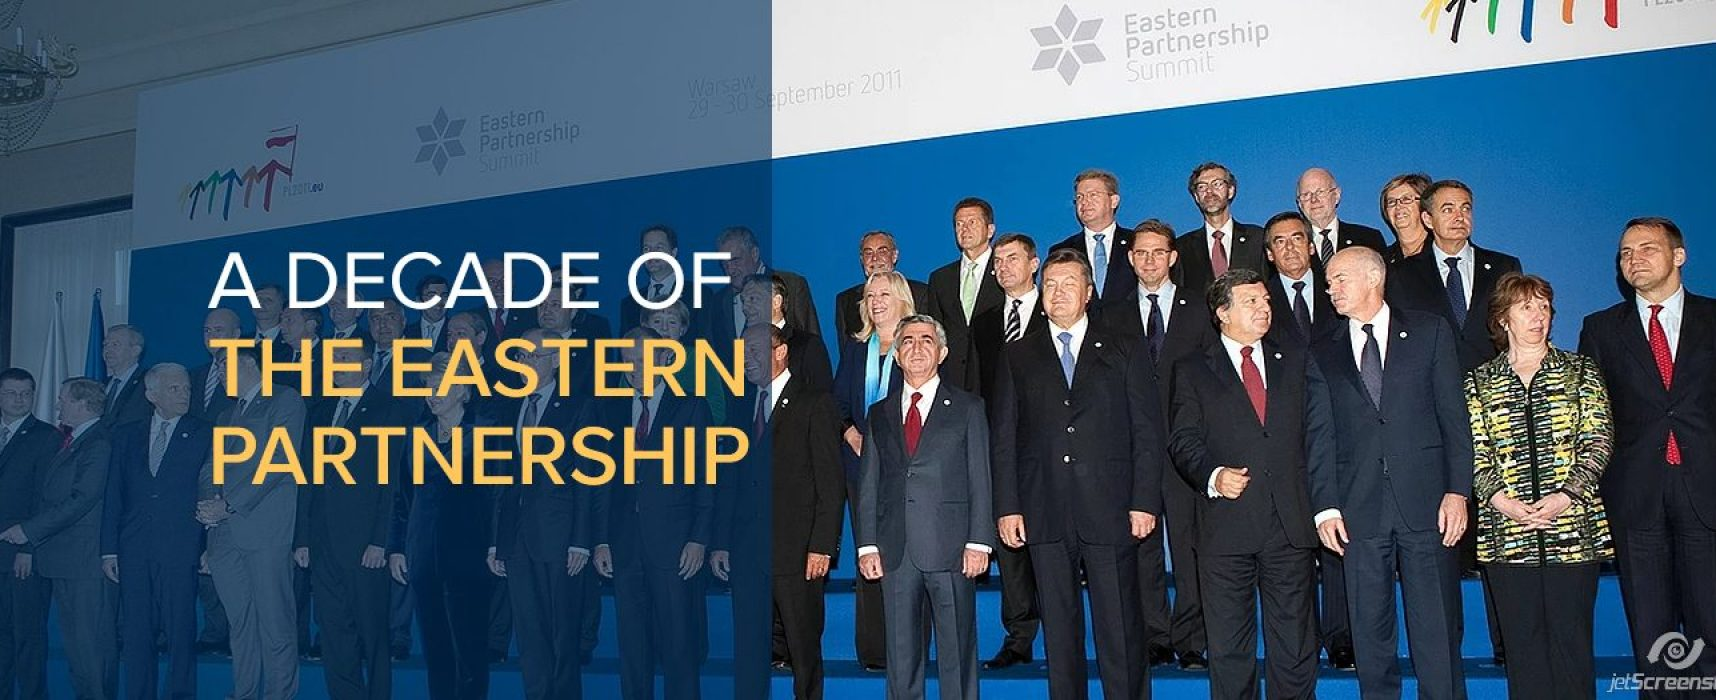 A decade of the Eastern Partnership: A cause for reflection, not for joy